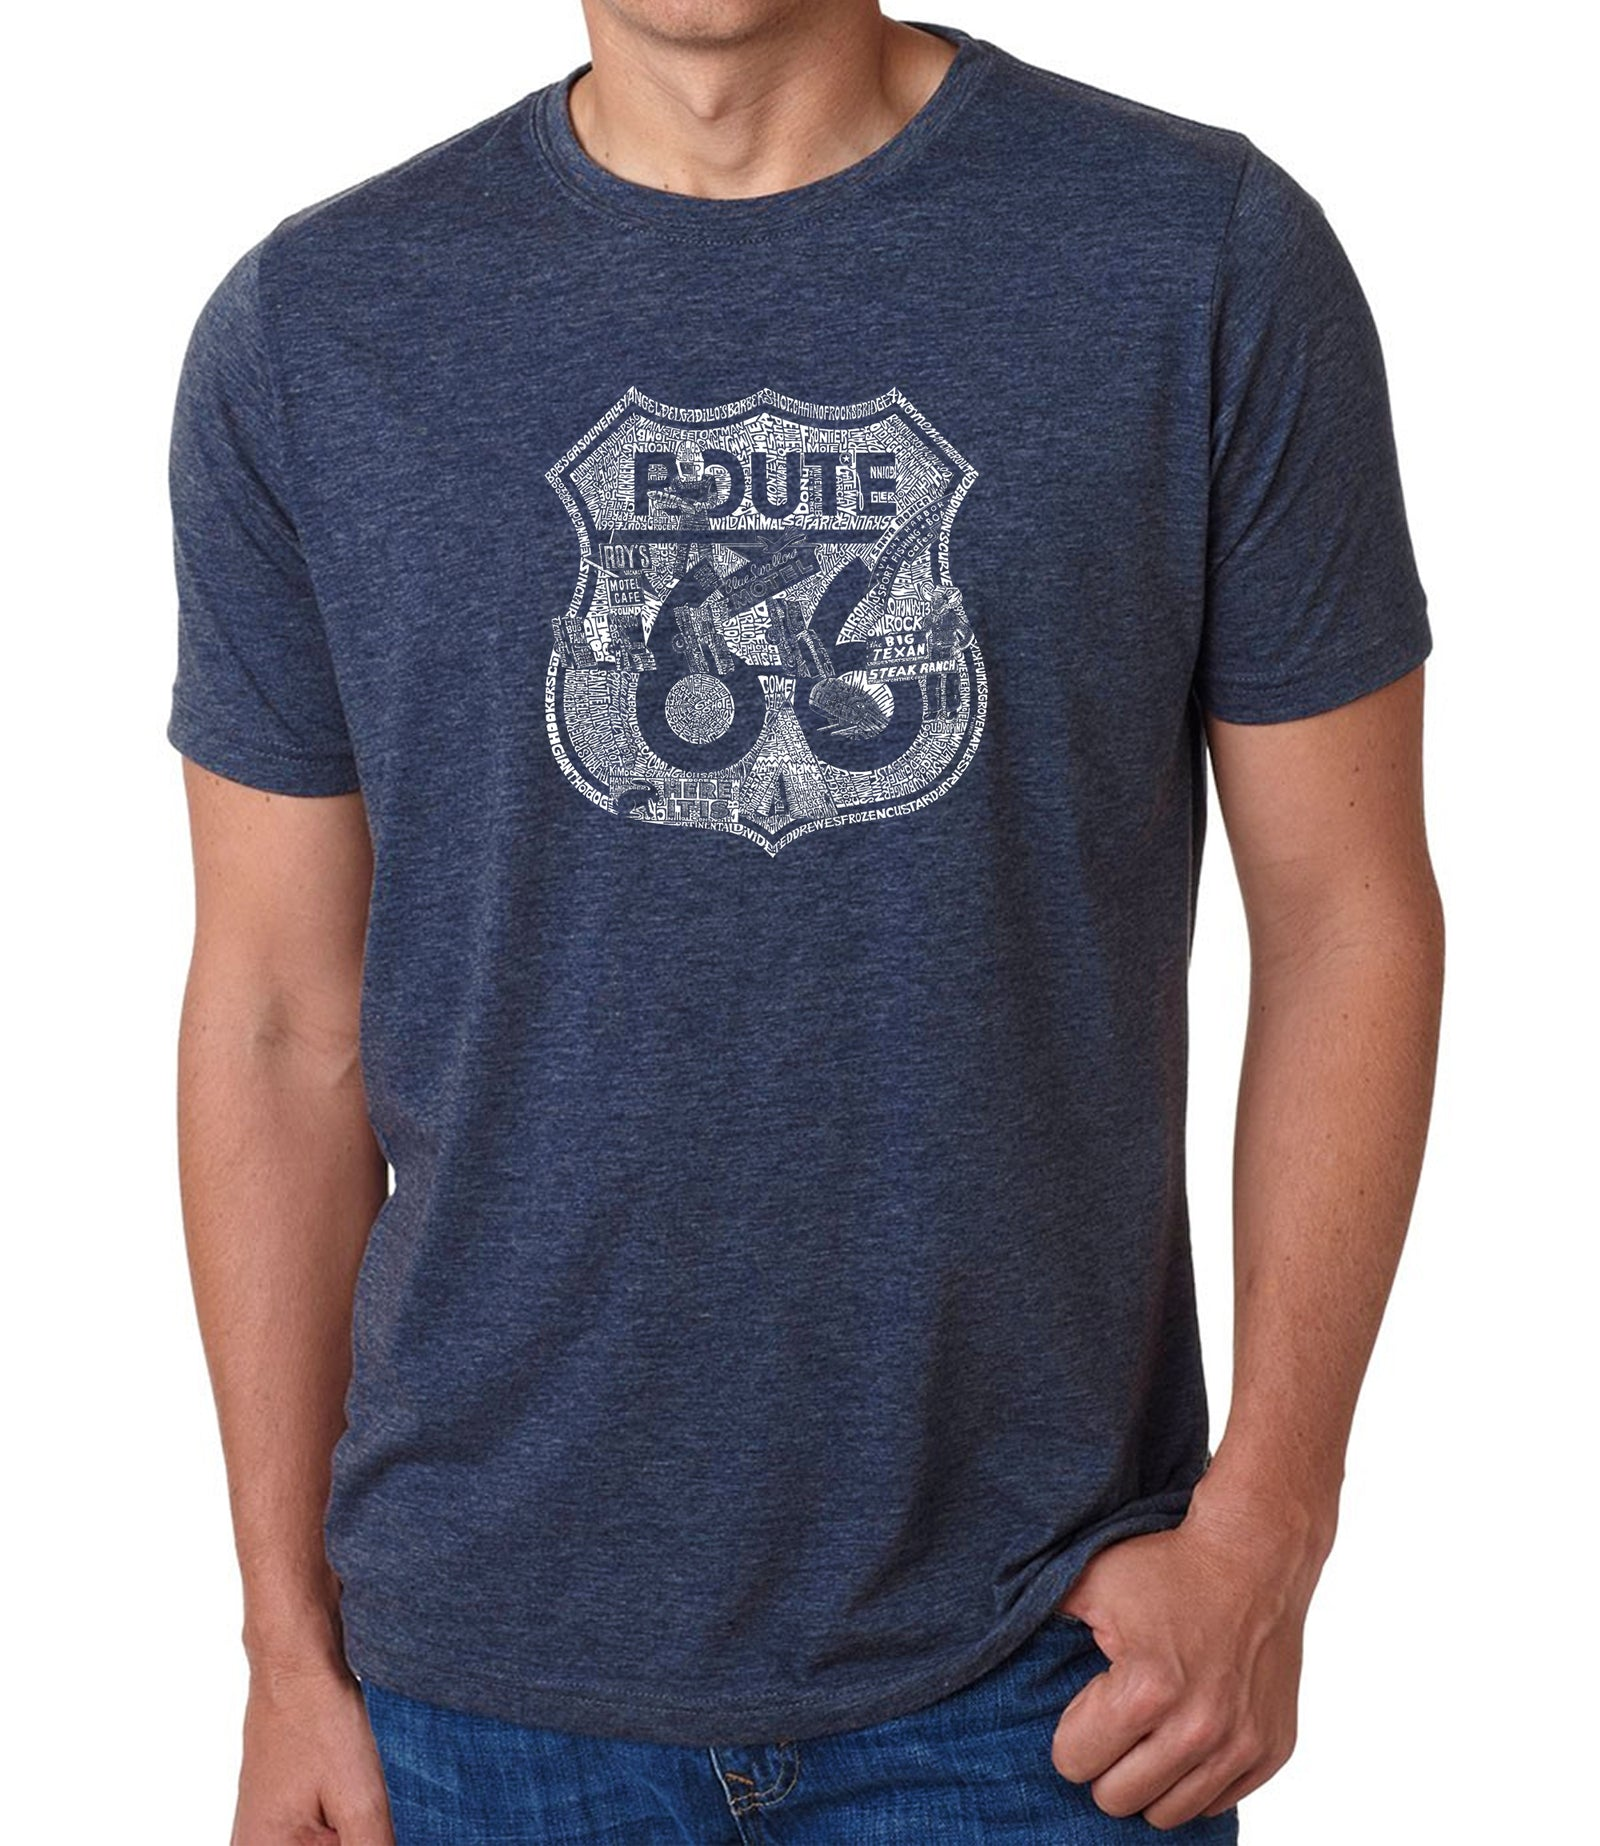 Men's Premium Blend Word Art T-shirt - Stops Along Route 66